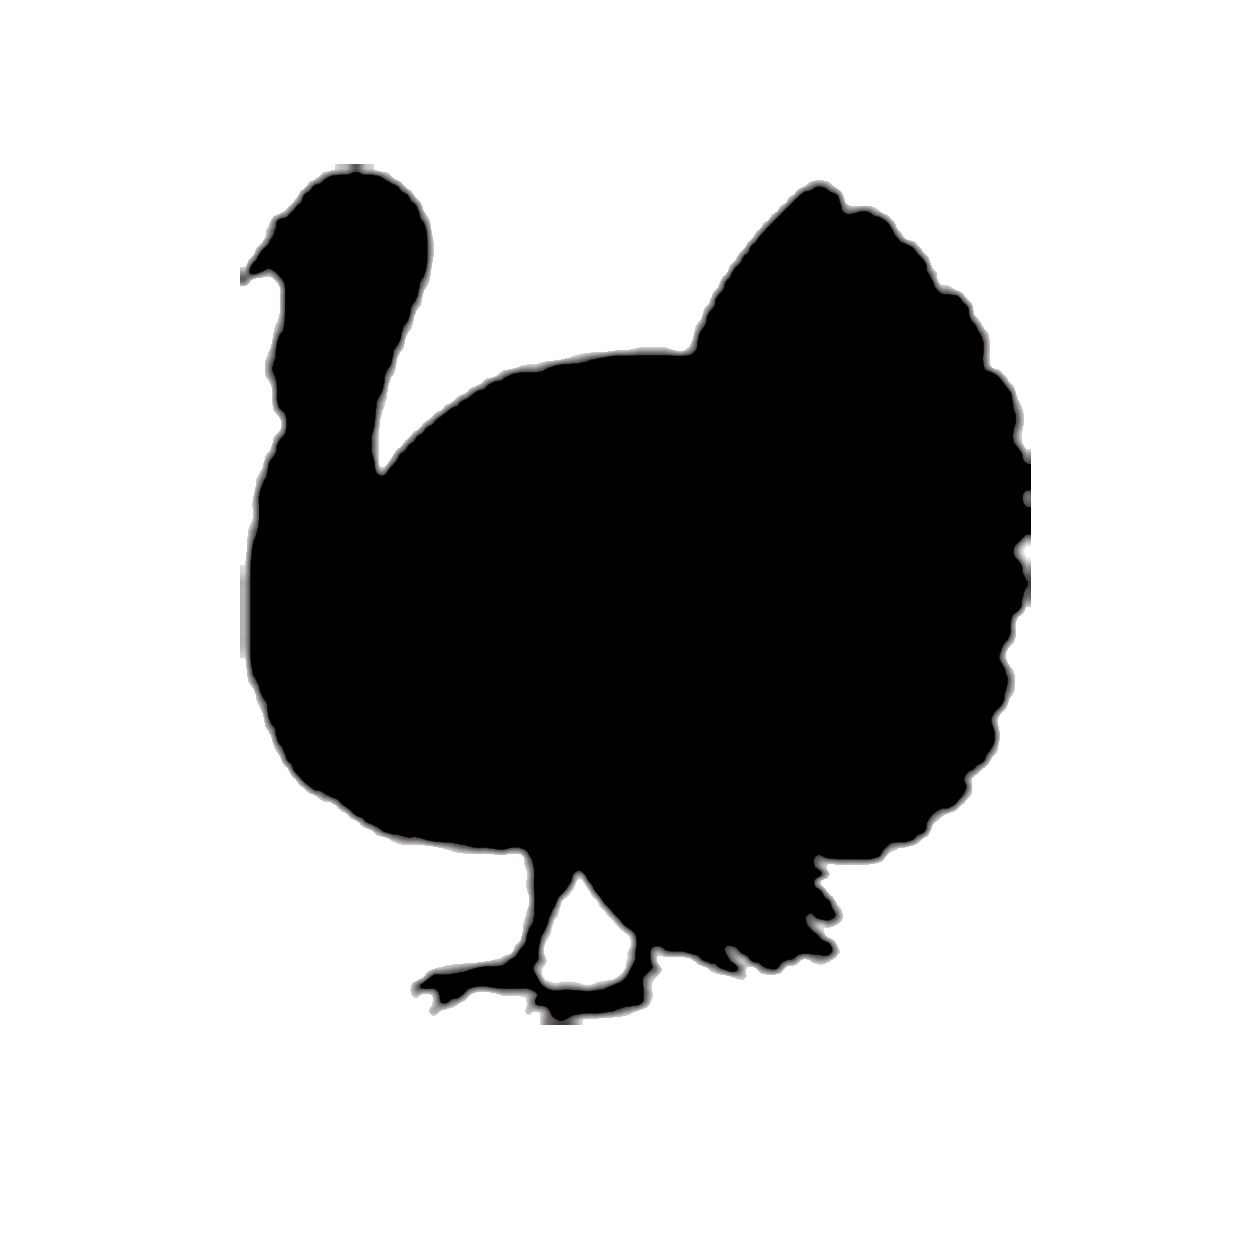 Turkey clip art silhouette. Thanksgiving at getdrawings com